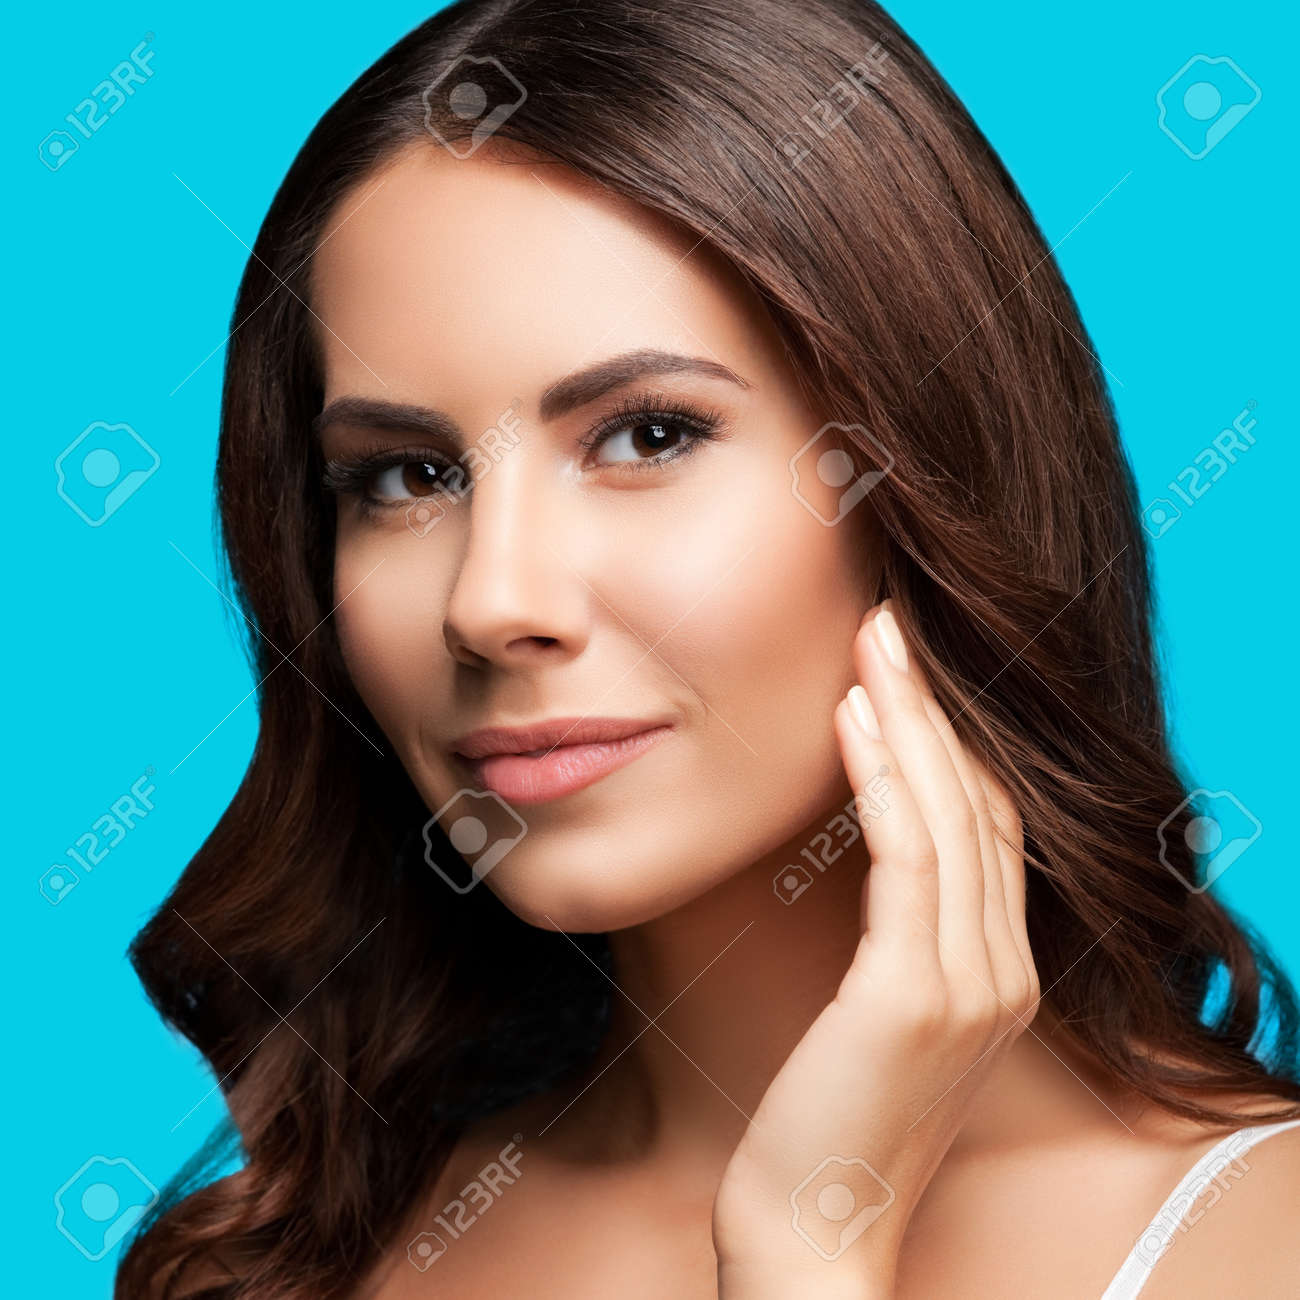 Portrait of beautiful woman in white casual tank top, over aqua blue green background. Brunette girl at studio beauty concept. Square composition image. - 171953008